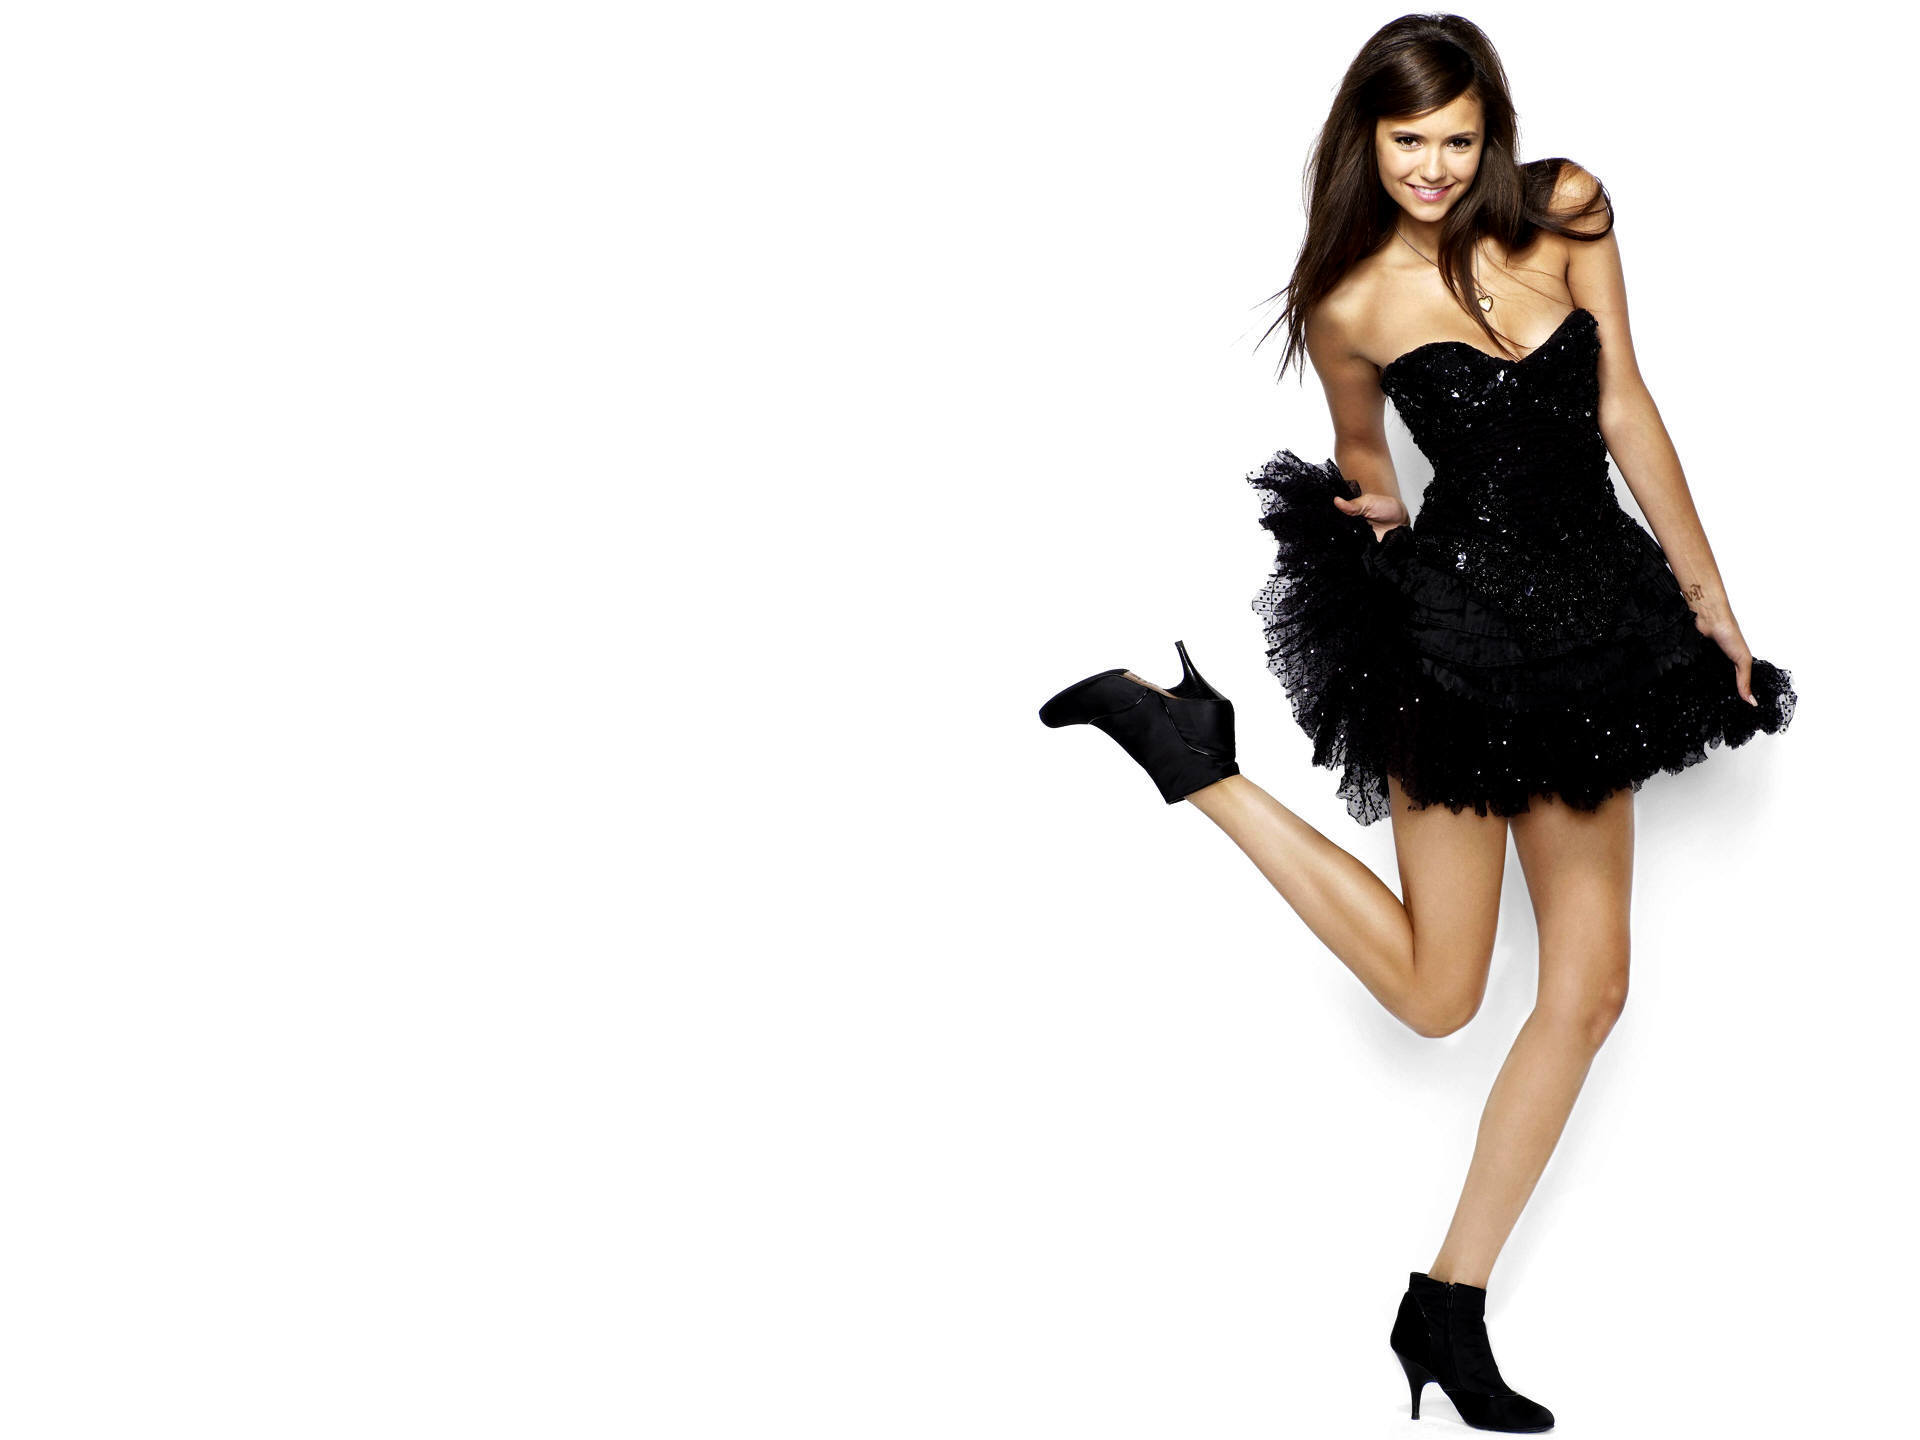 Pretty Nina Dobrev Wallpaper!